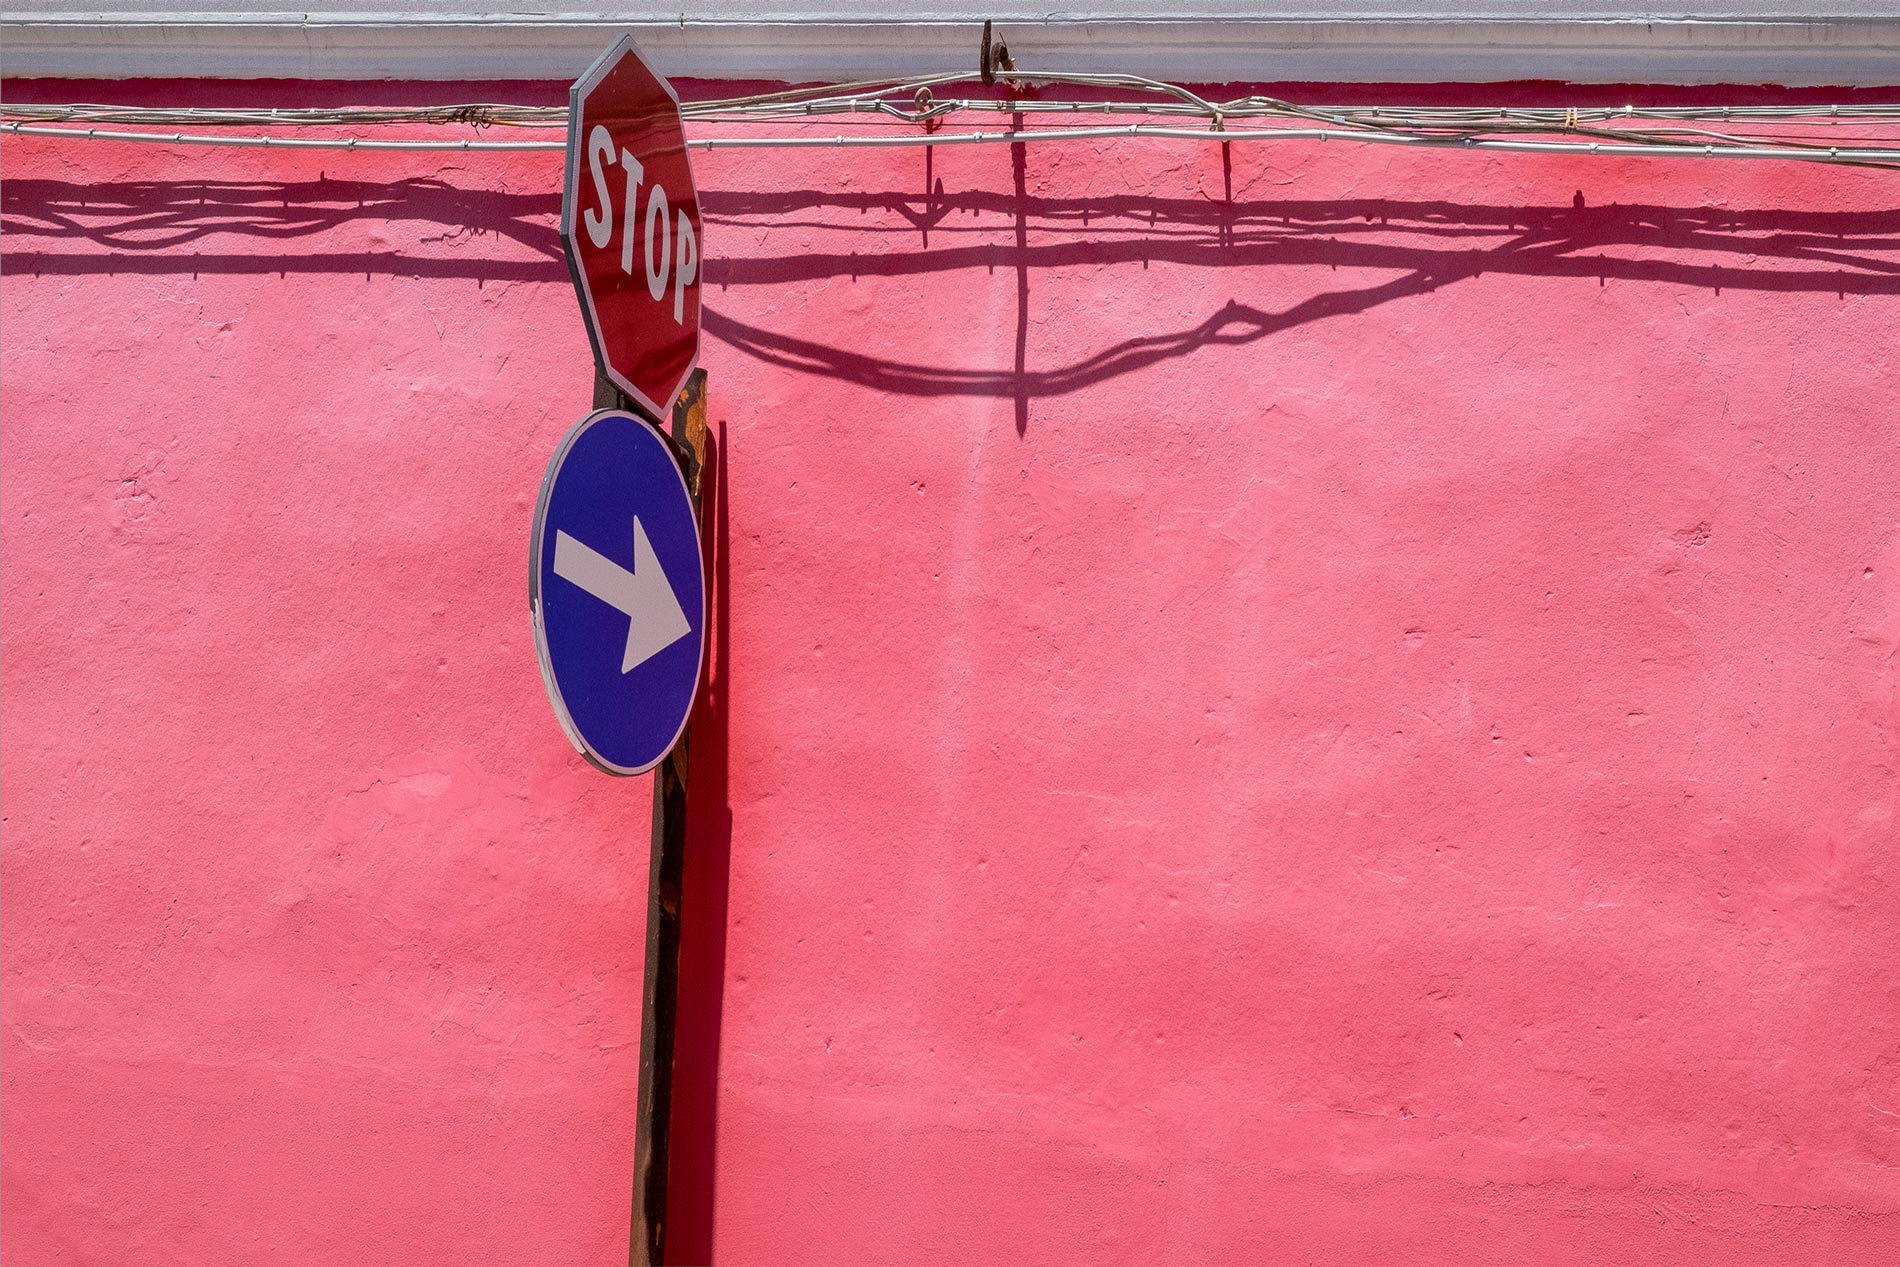 Pink wall and sign - Floridia, Sicily